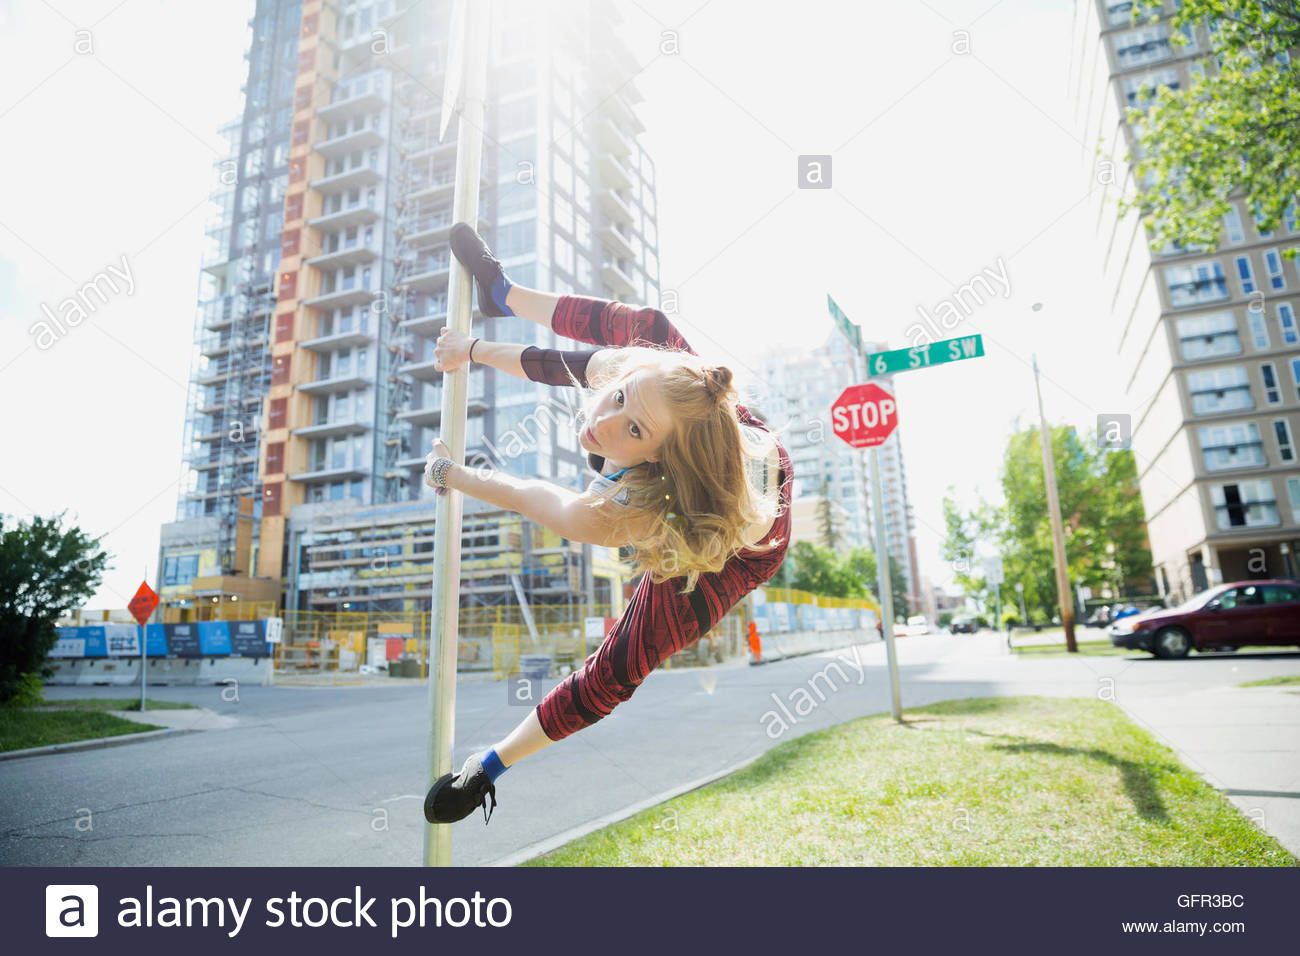 Young woman doing parkour on pole in urban street - Stock Image